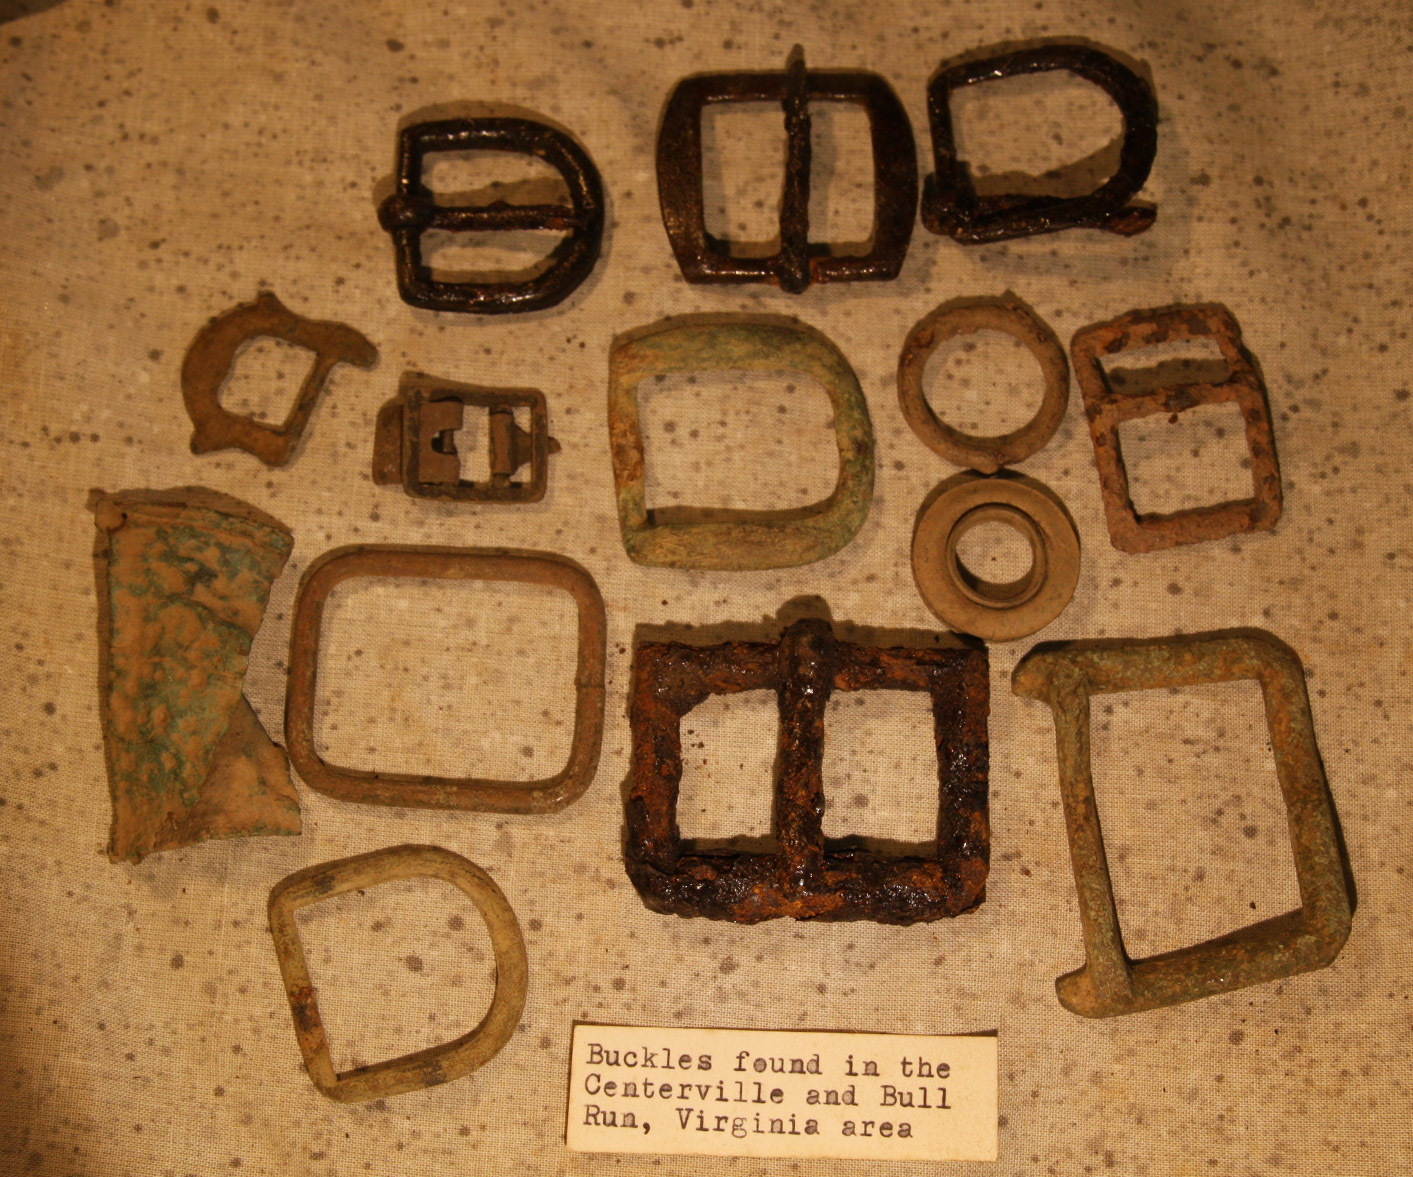 JUST ADDED ON 5/22 - CENTREVILLE, VIRGINIA / BULL RUN AREA - 14 Artifacts - Mostly Brass & Iron Buckles -  with Original Typed Label RG-GEN03